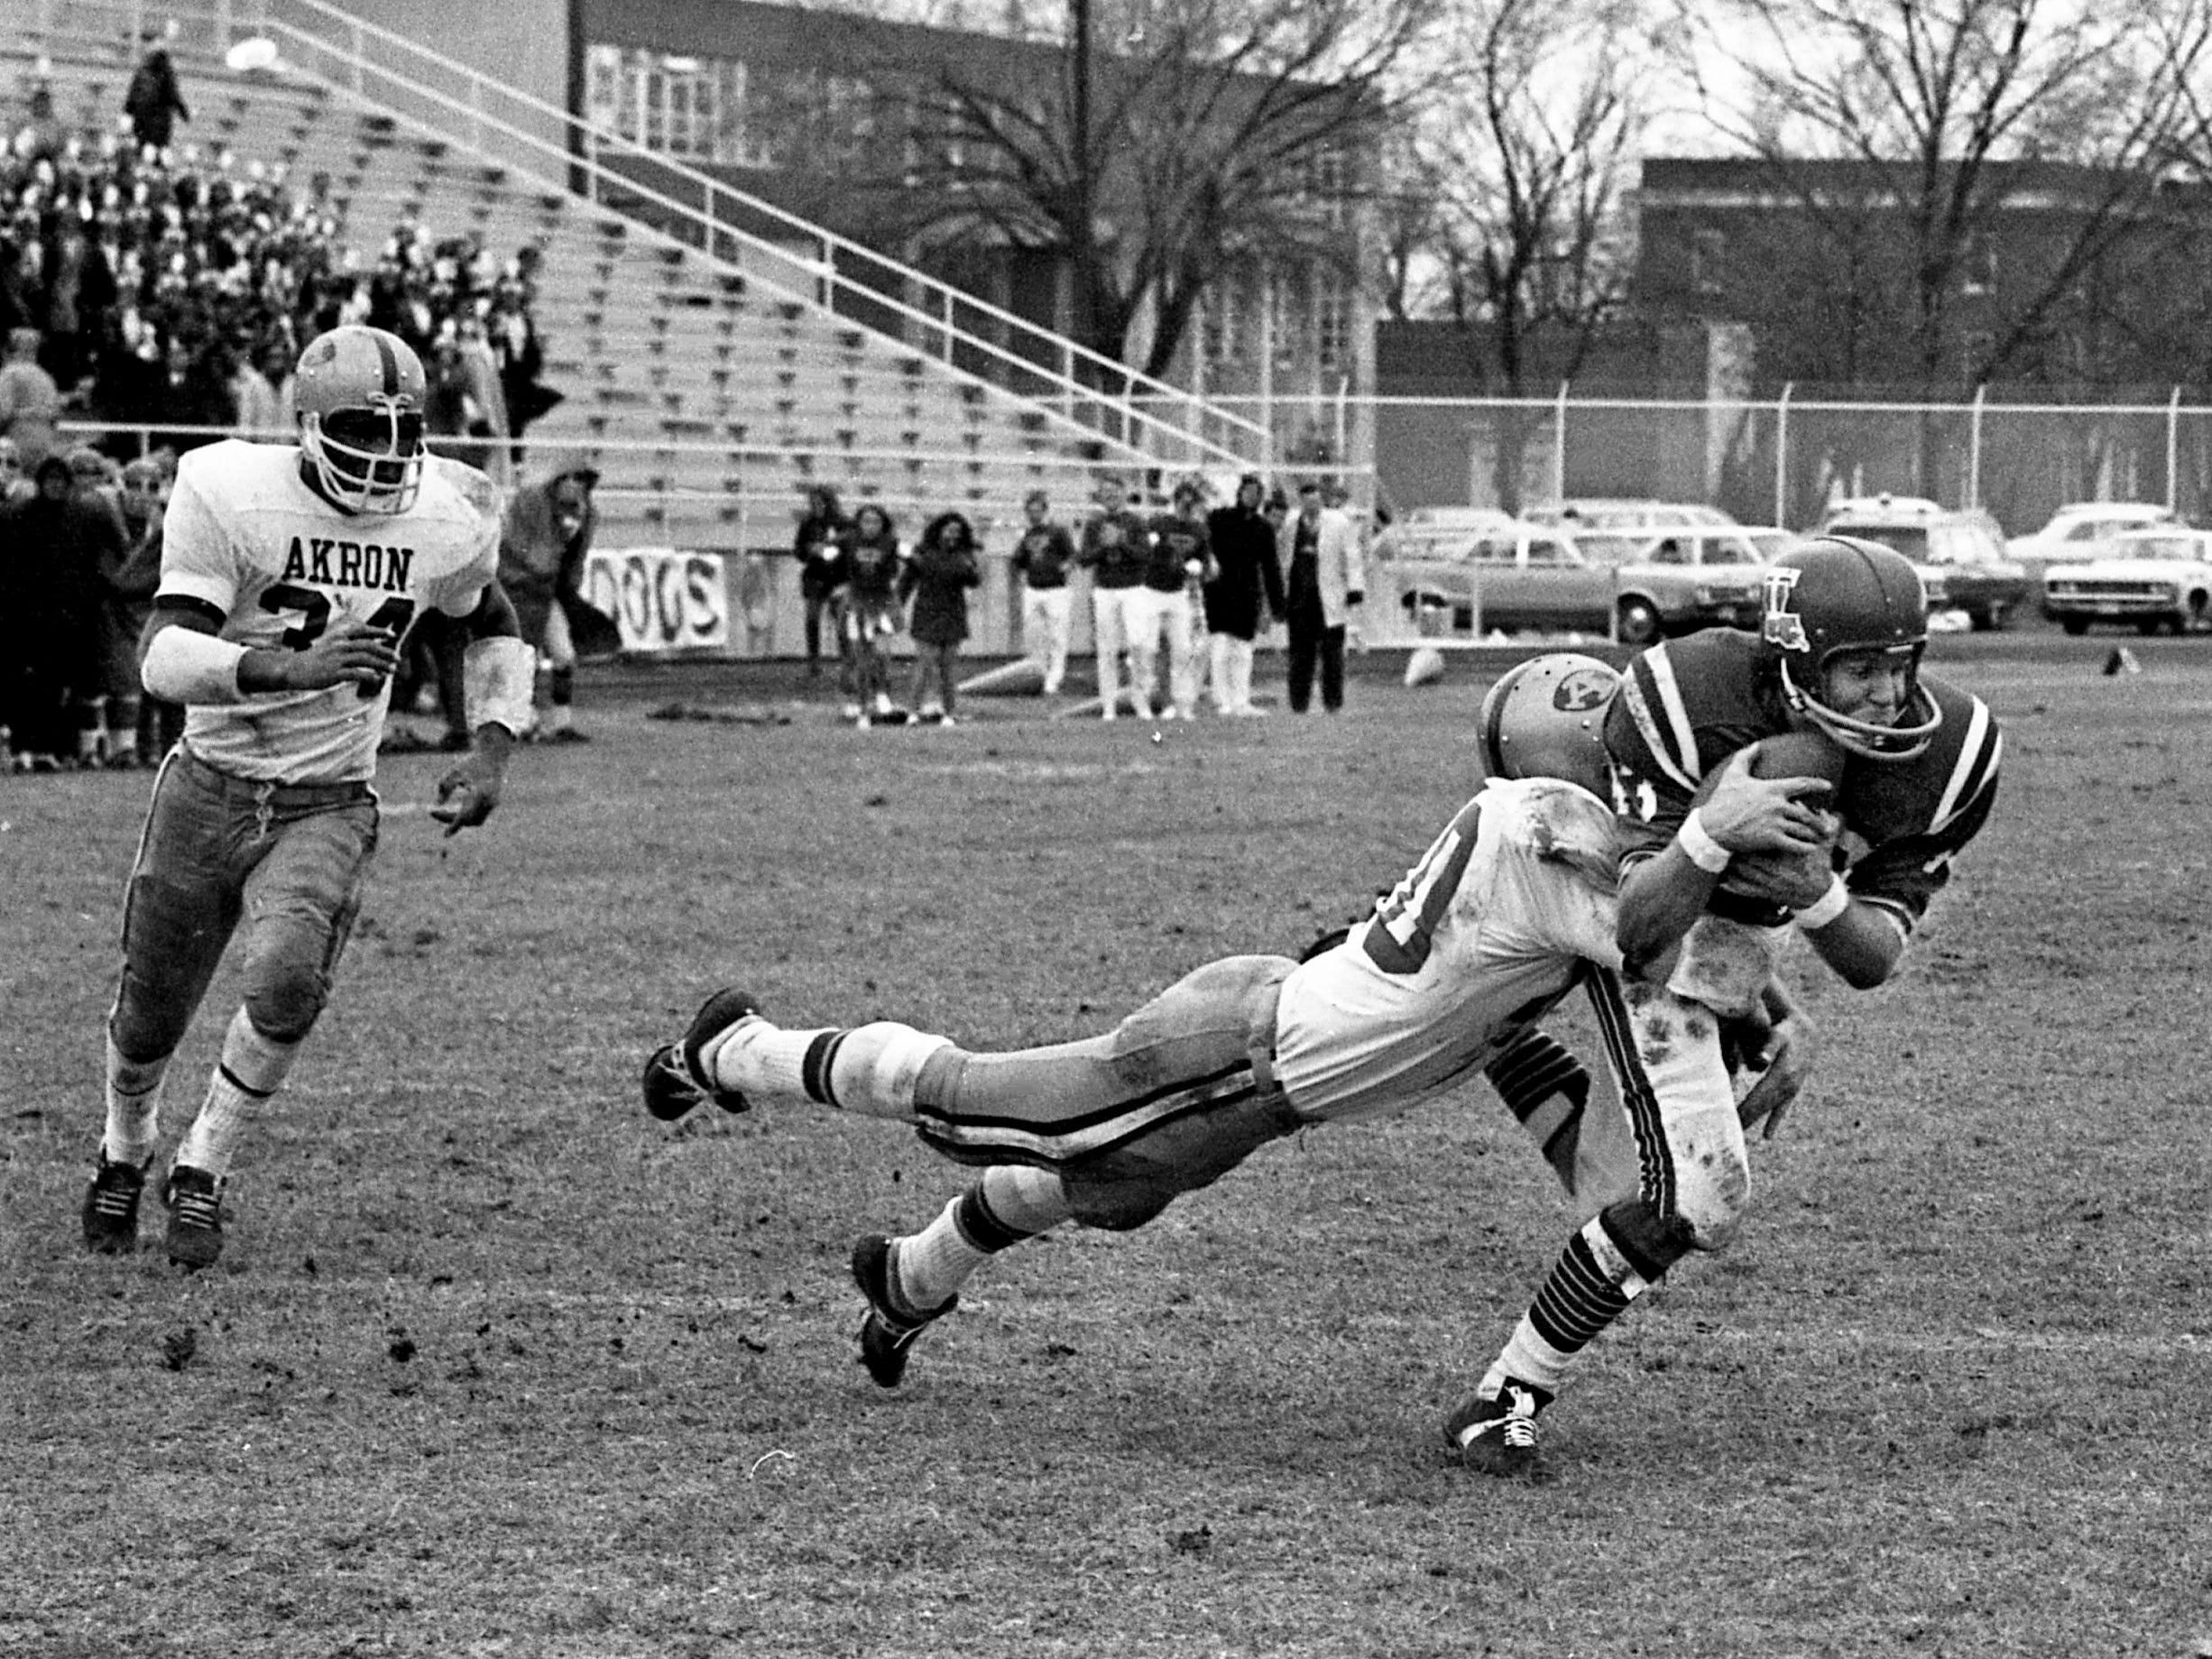 Louisiana Tech receiver Tommy Spinks, right, is tackled by Akron defender Tony Pallija after catching one of his 12 receptions in their 33-13 victory in the fifth annual Grantland Rice Bowl at Middle Tennessee State University on Dec. 14, 1968.